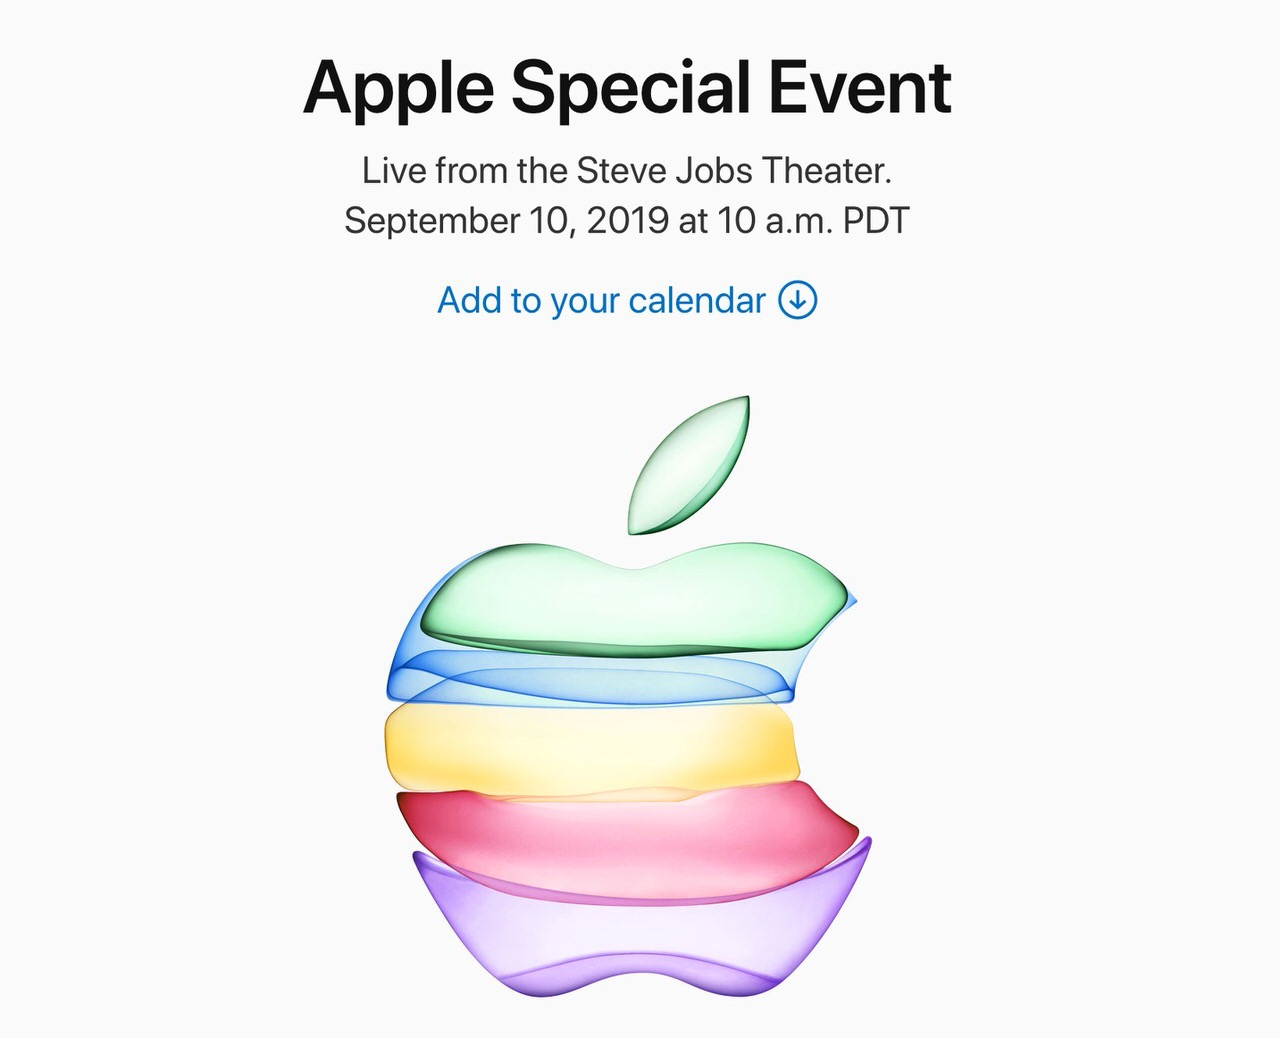 Apple、2019年9月10日に「Apple Special Event」開催を発表